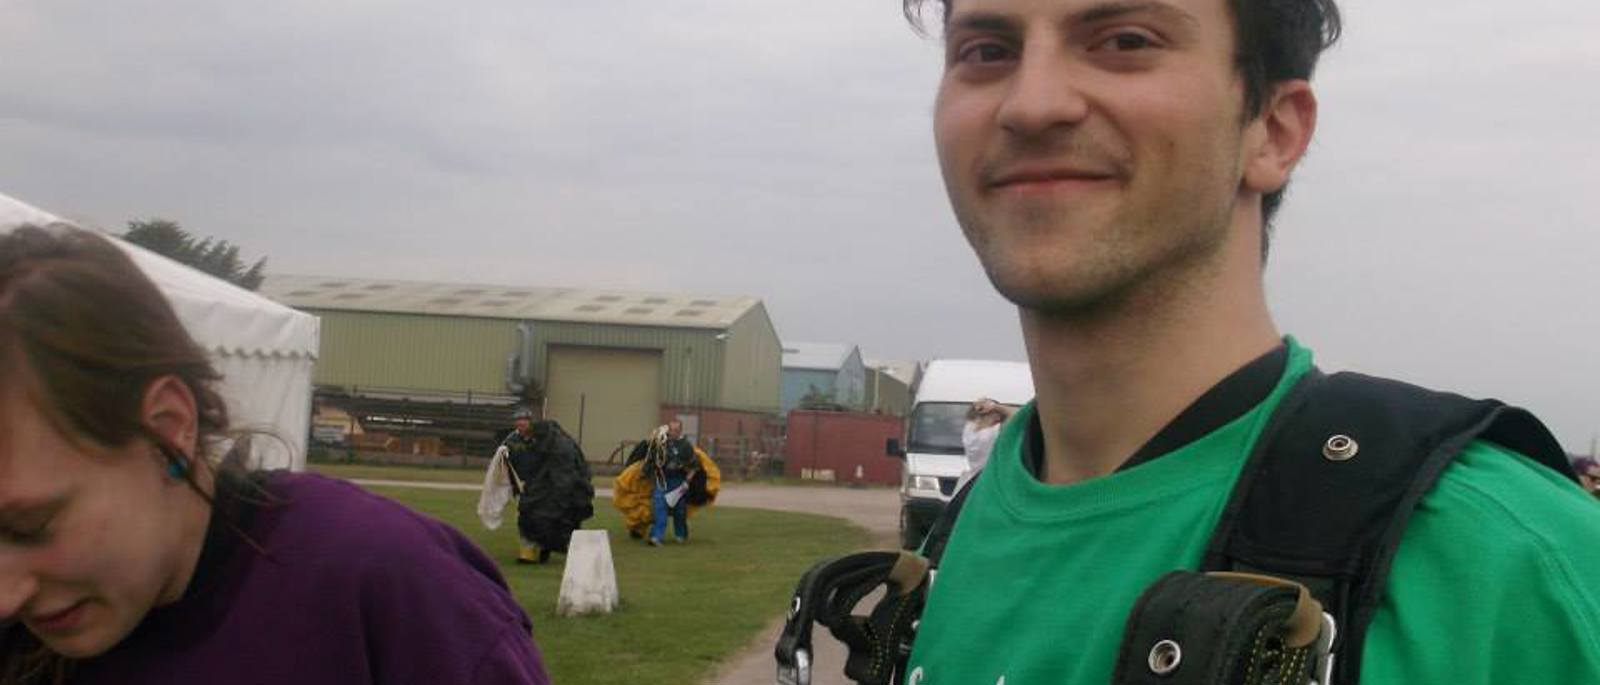 Volunteer Laurence strapped into his parachute before he takes to the air.